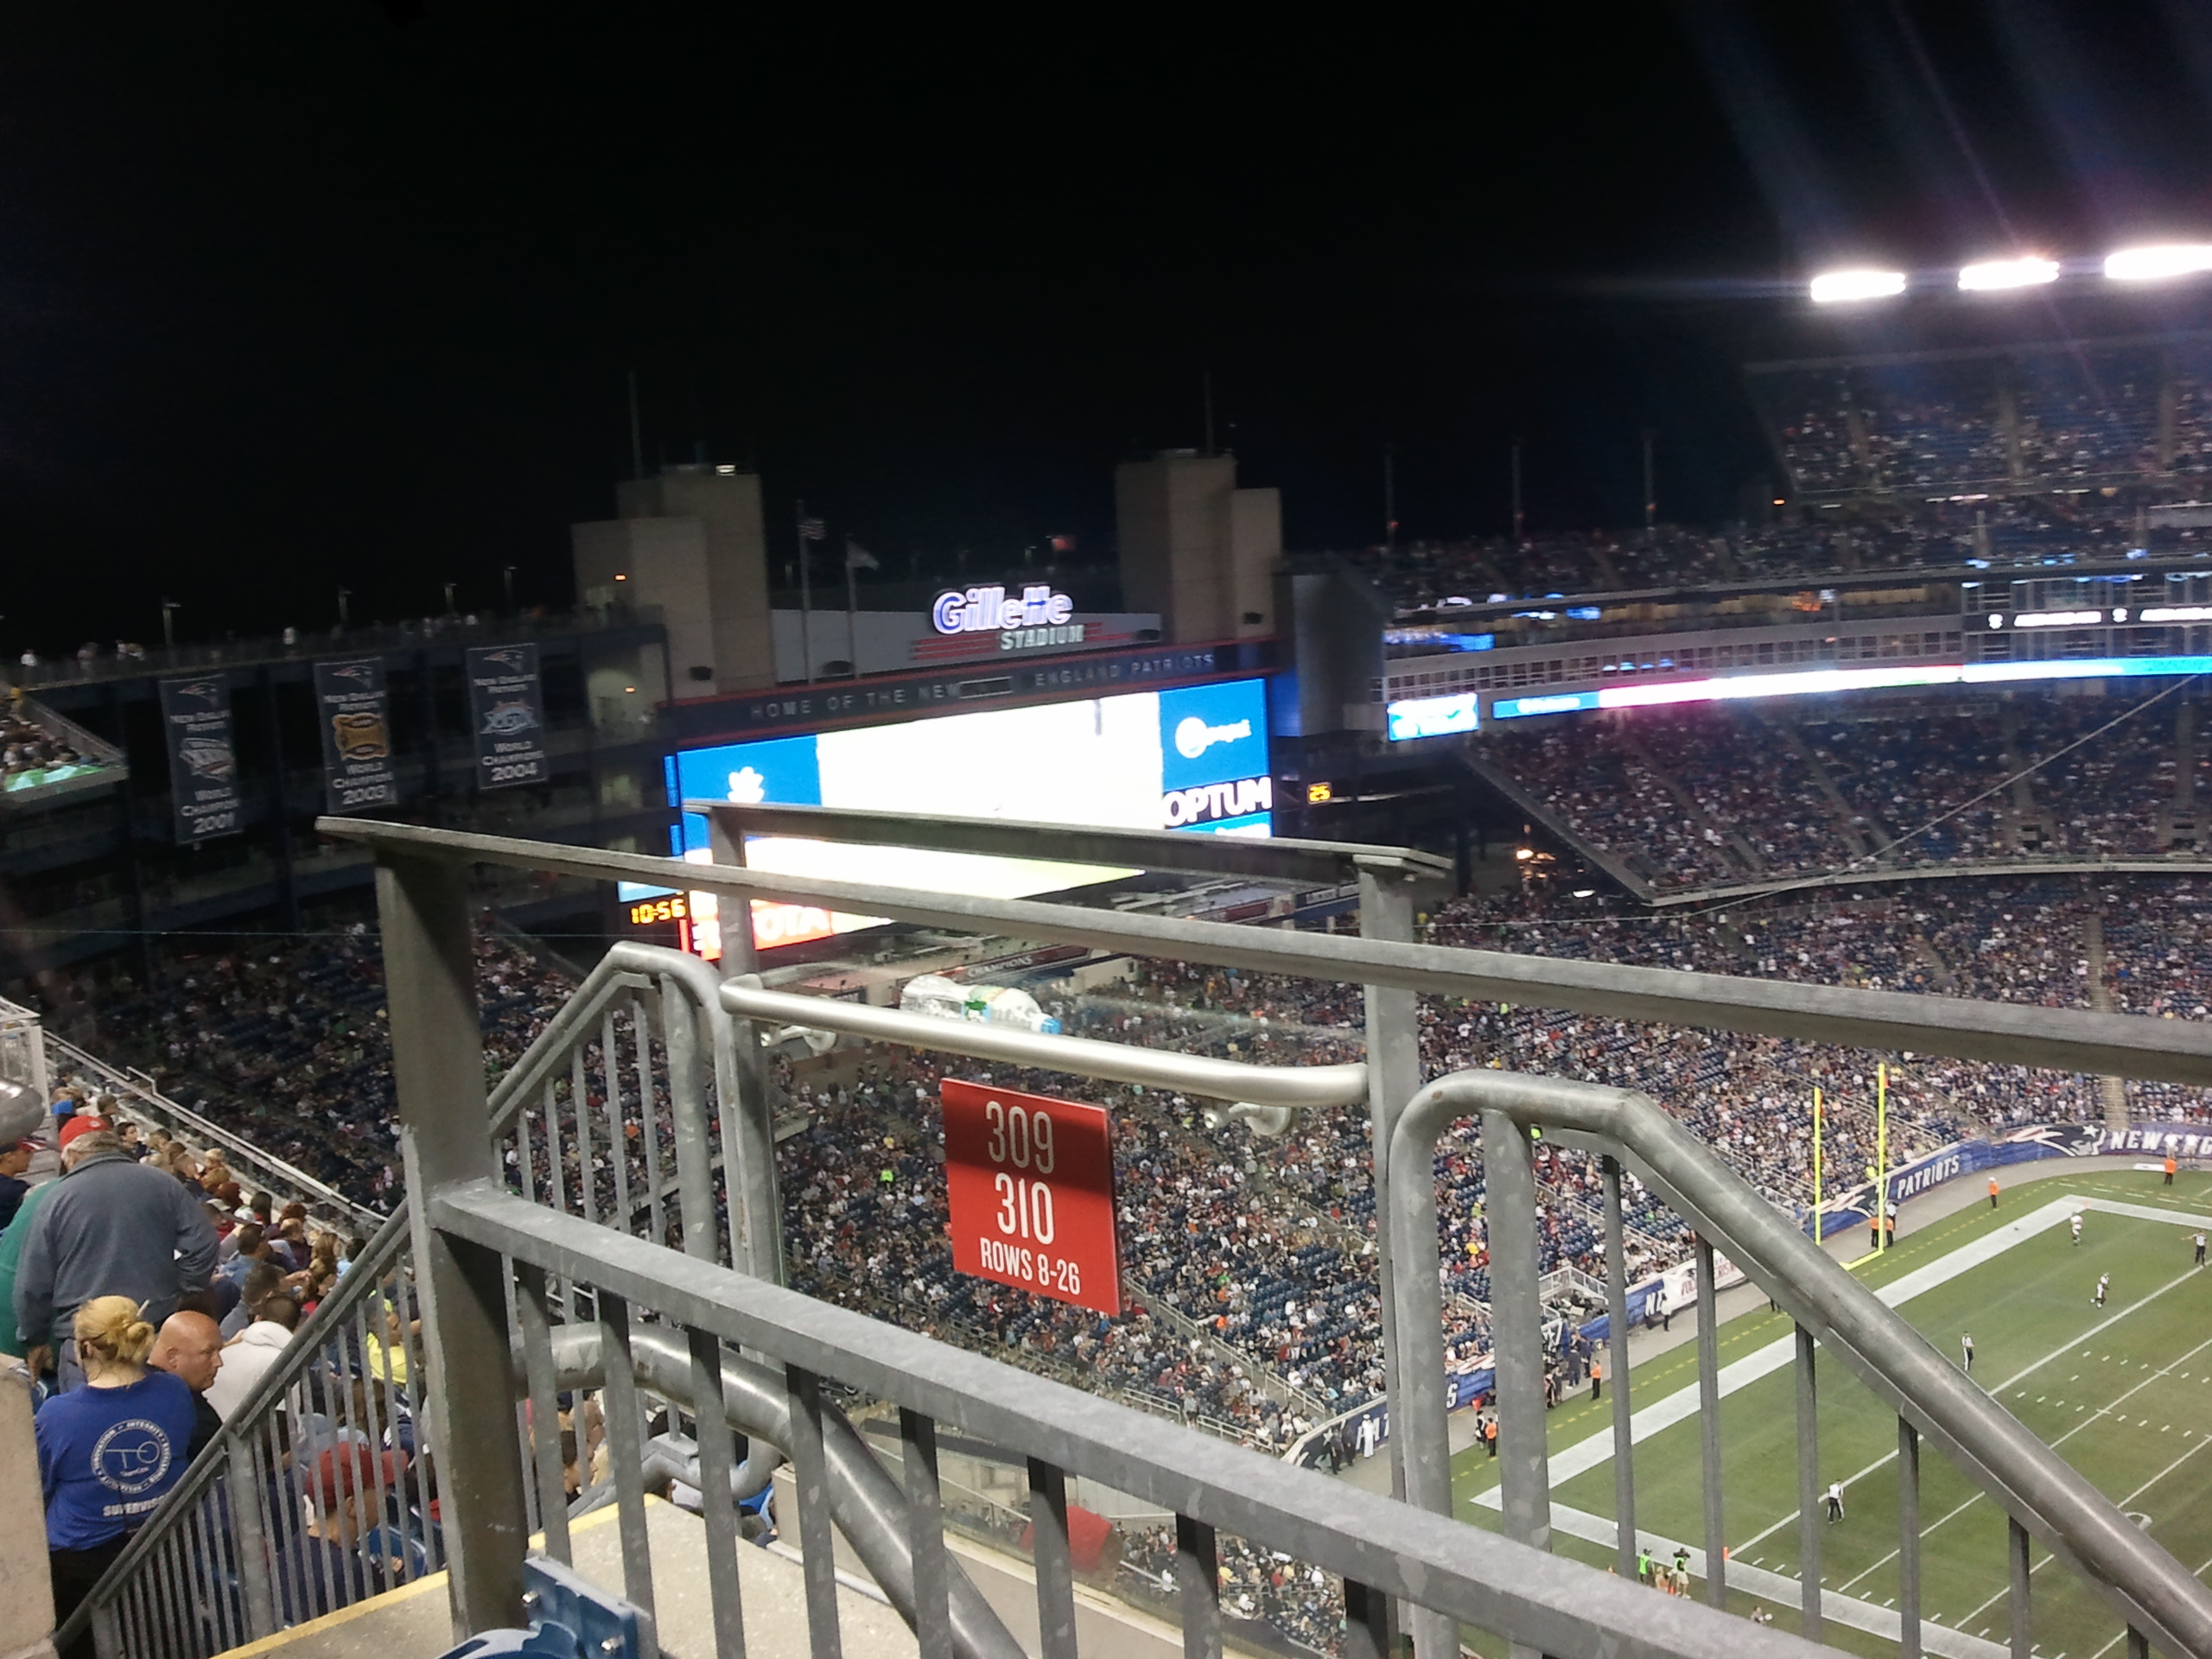 Section 310, Row 8